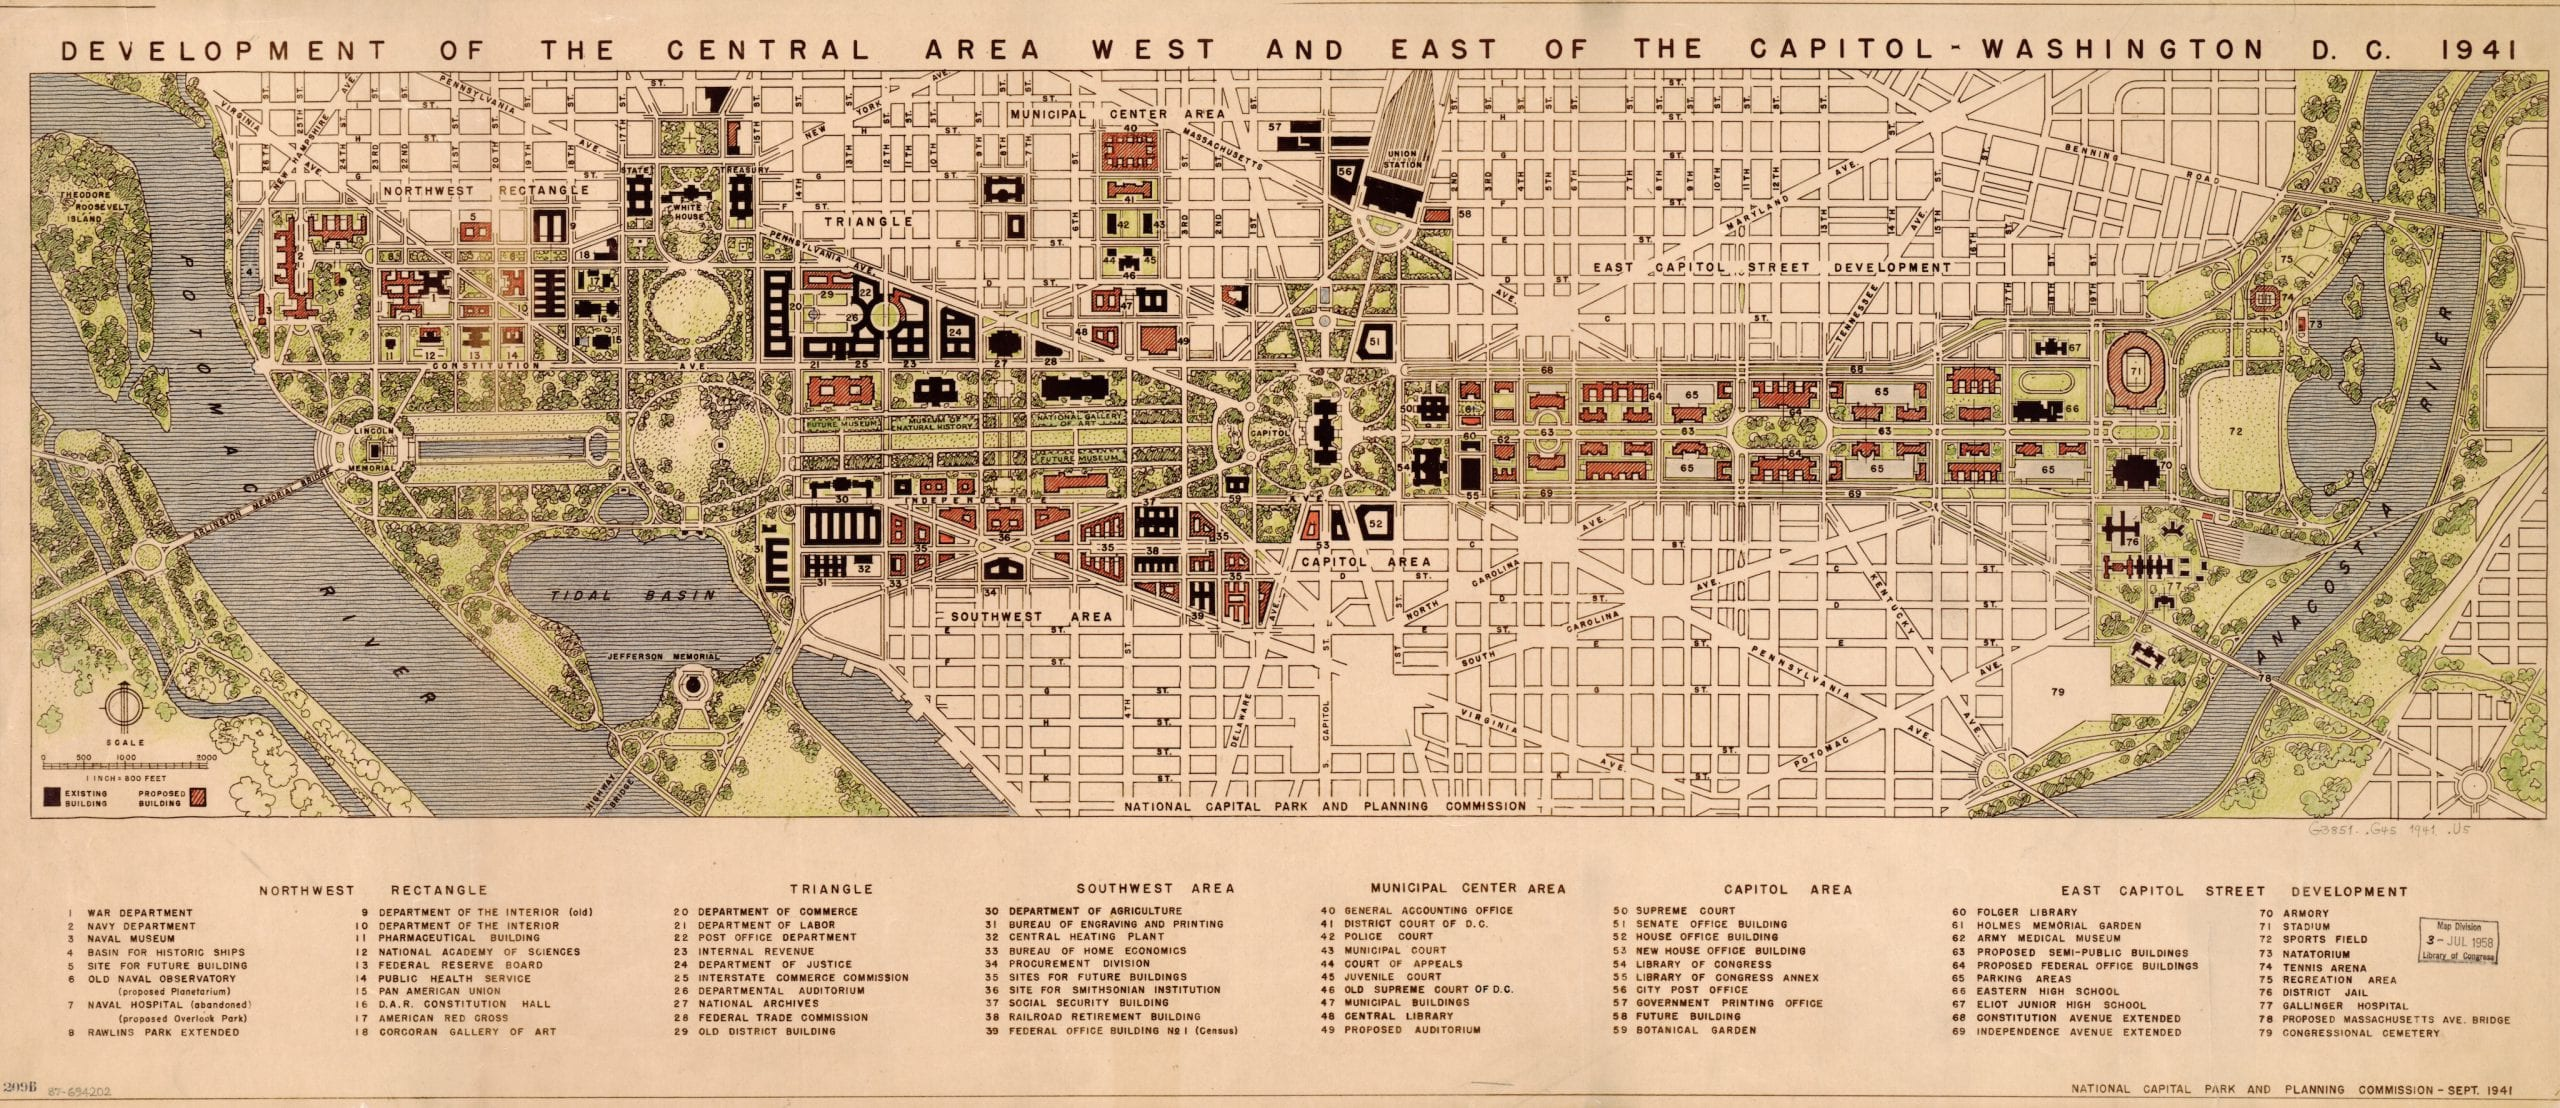 1941 Development Map of Washington